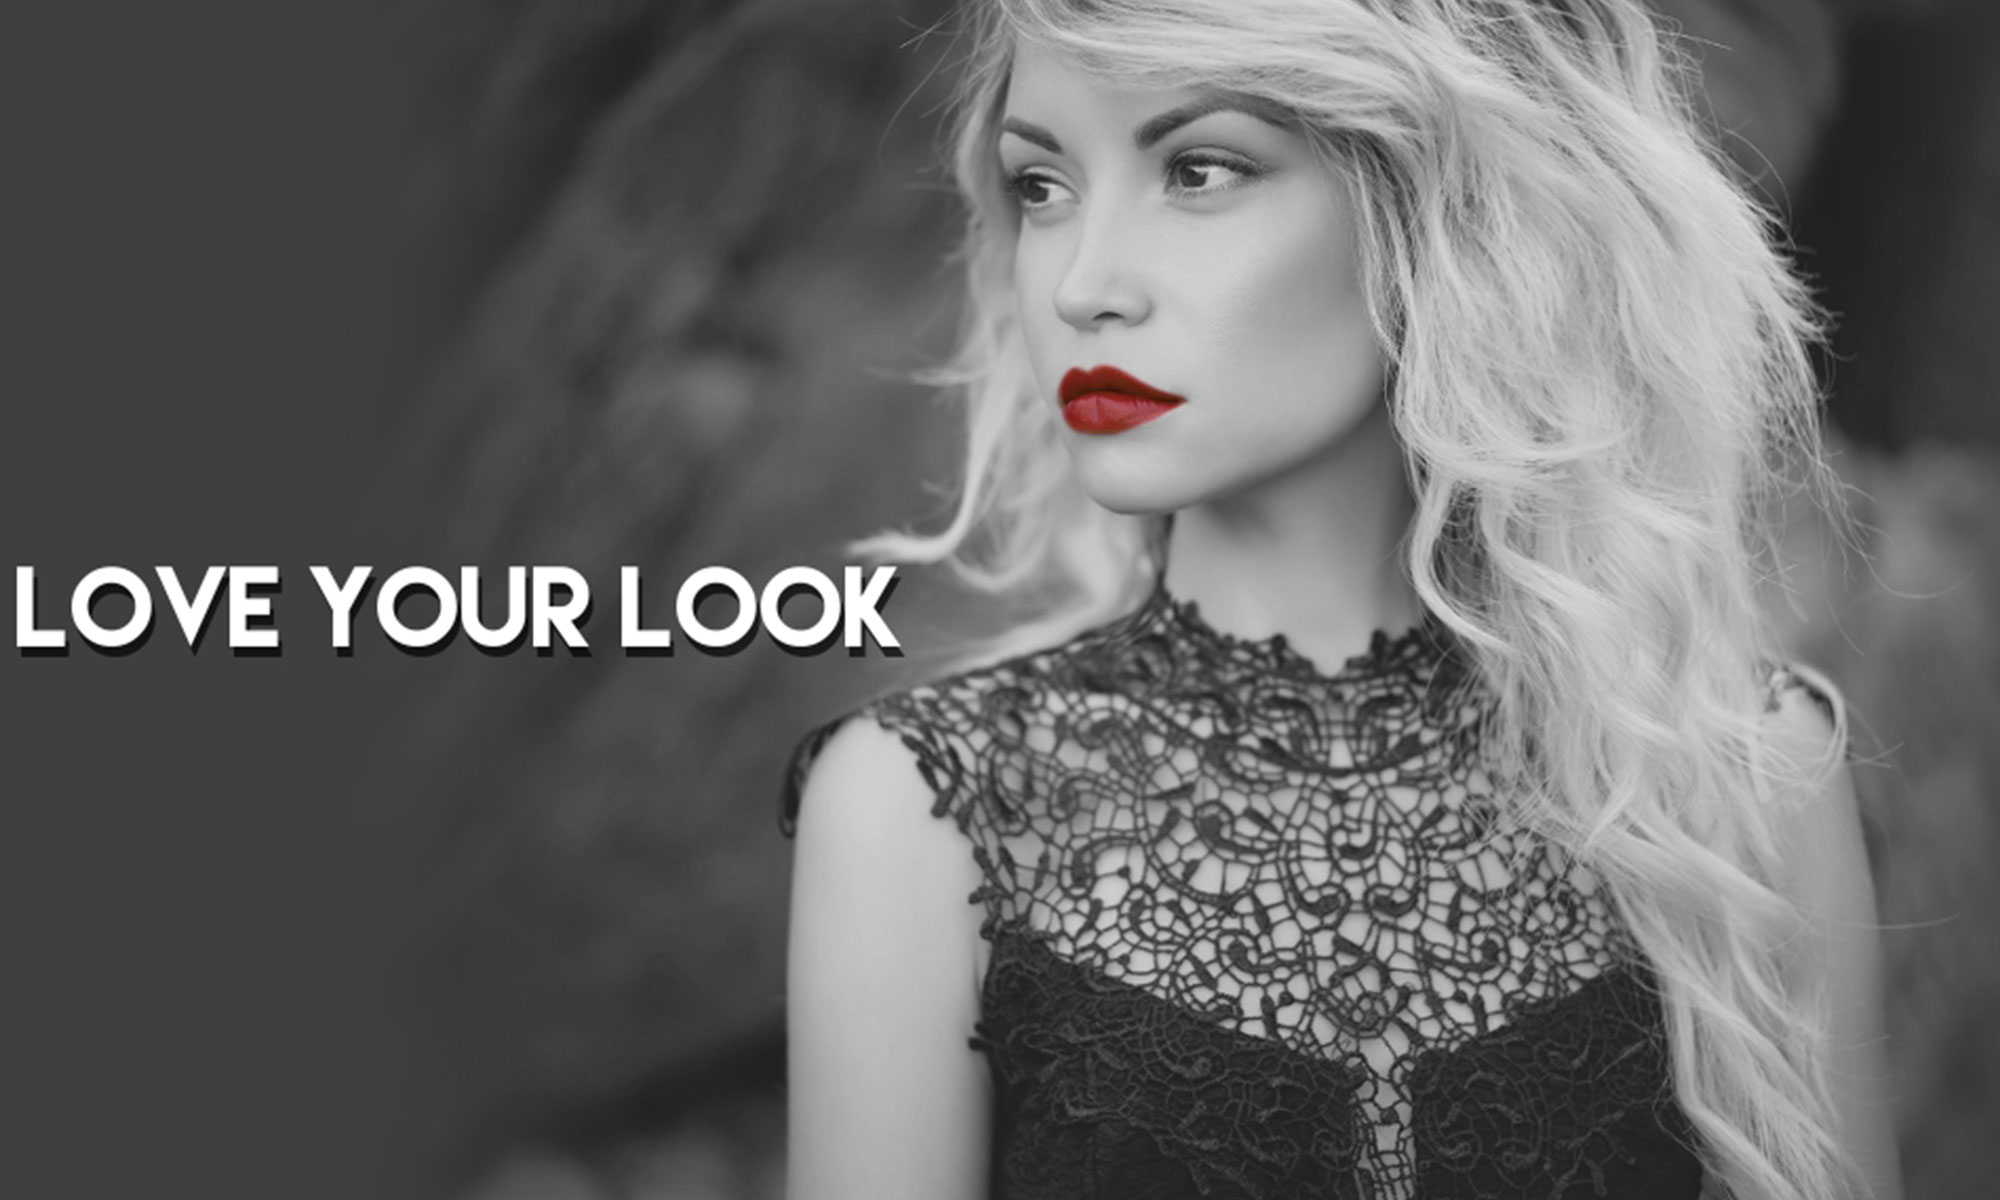 Love Your Look at 146 East Salon